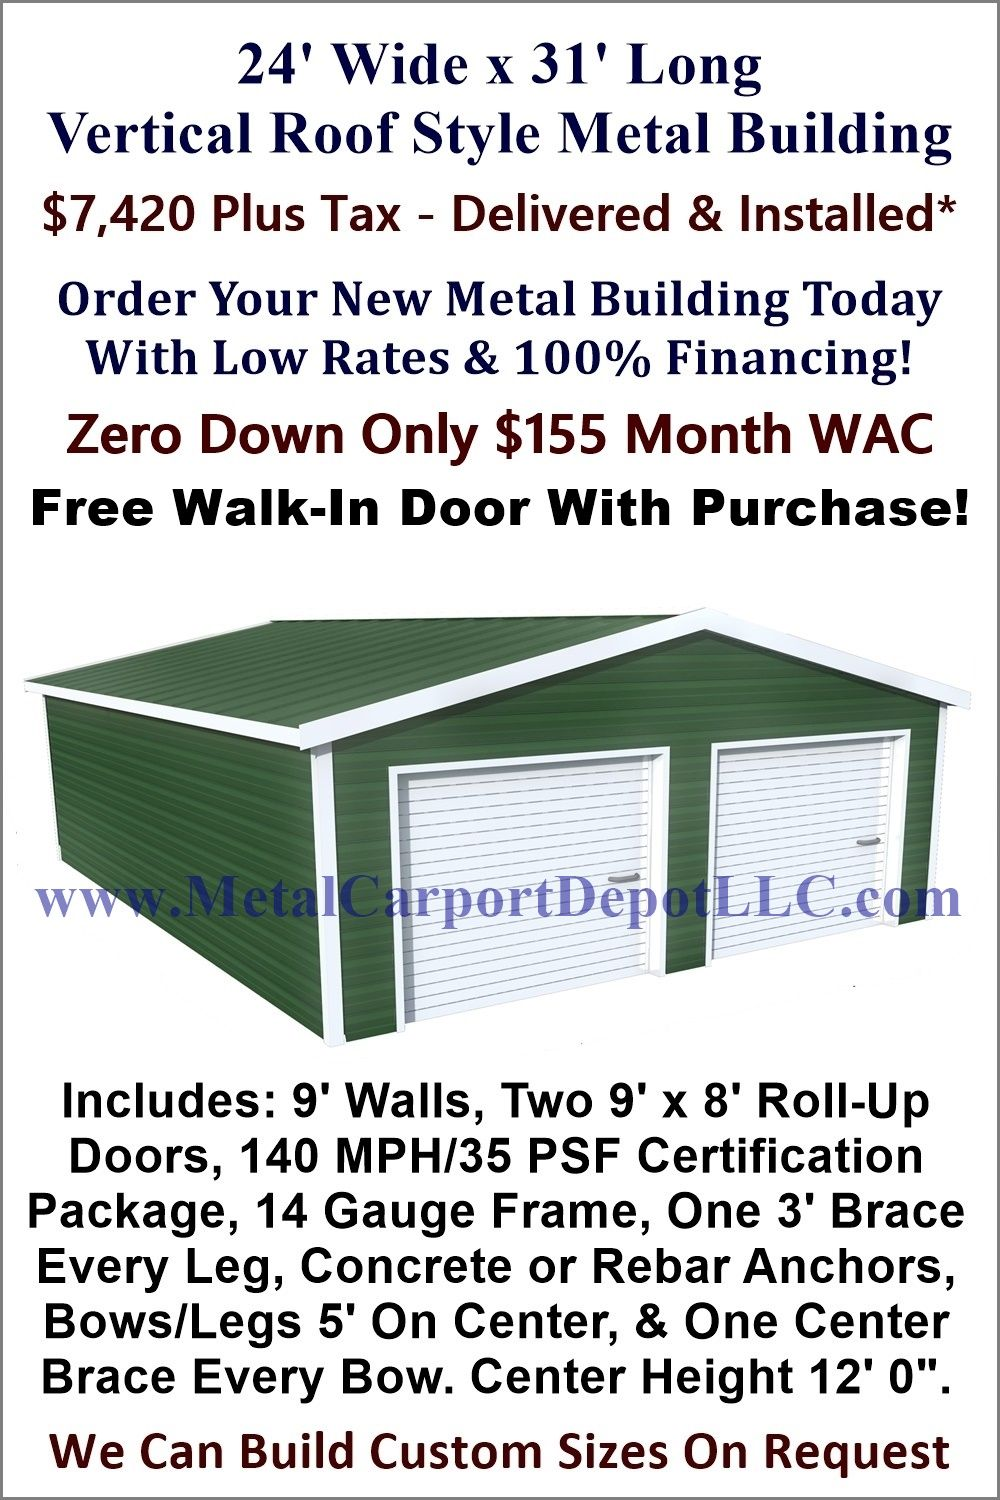 24 X 31 Steel Building Vertical Roof Metal Garage Metal Carport Depot Roof Styles Metal Buildings Roof